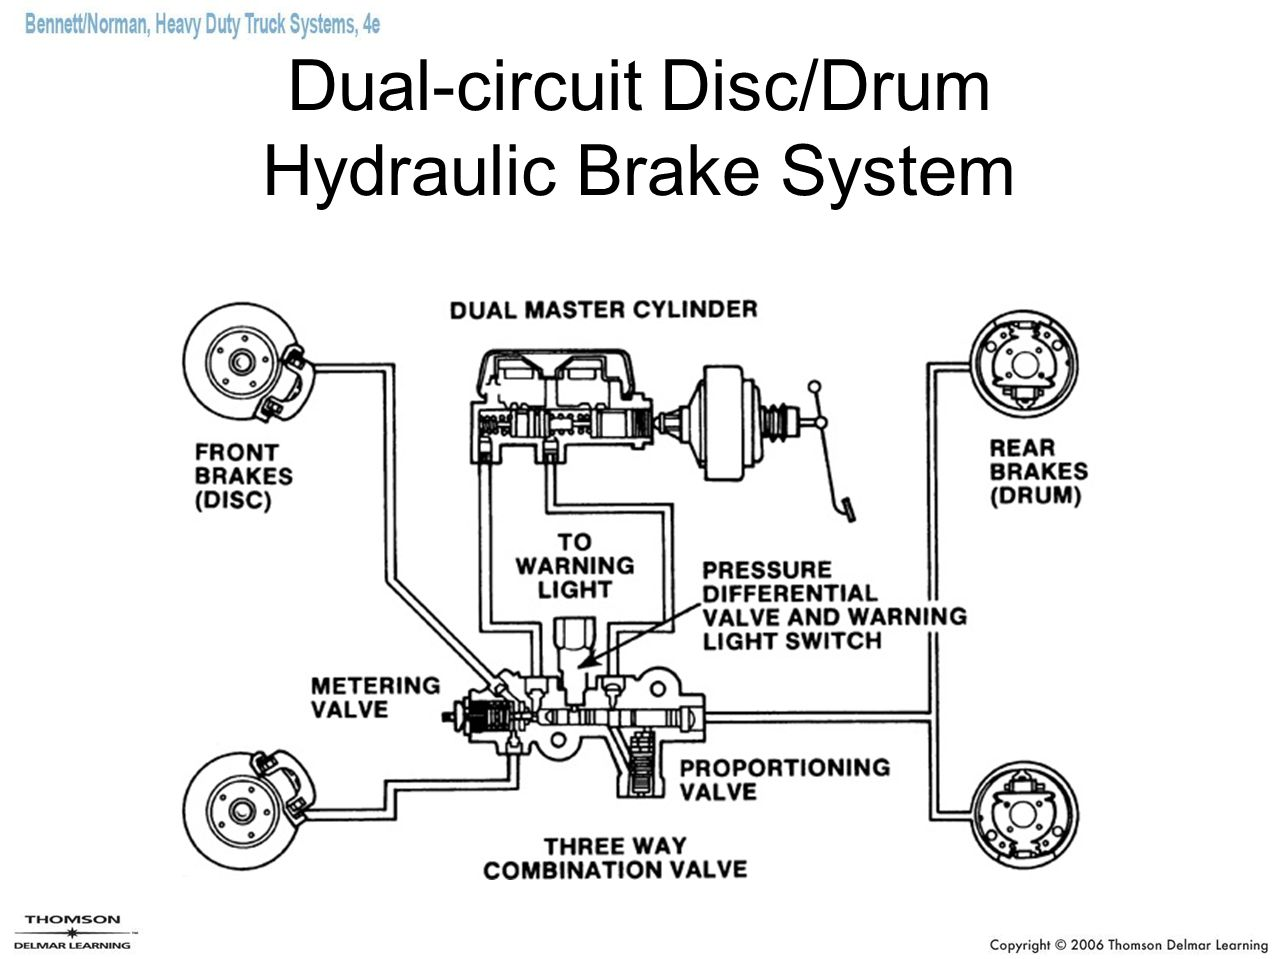 Hydraulic Brakes And Air Over Hydraulic Brake Systems